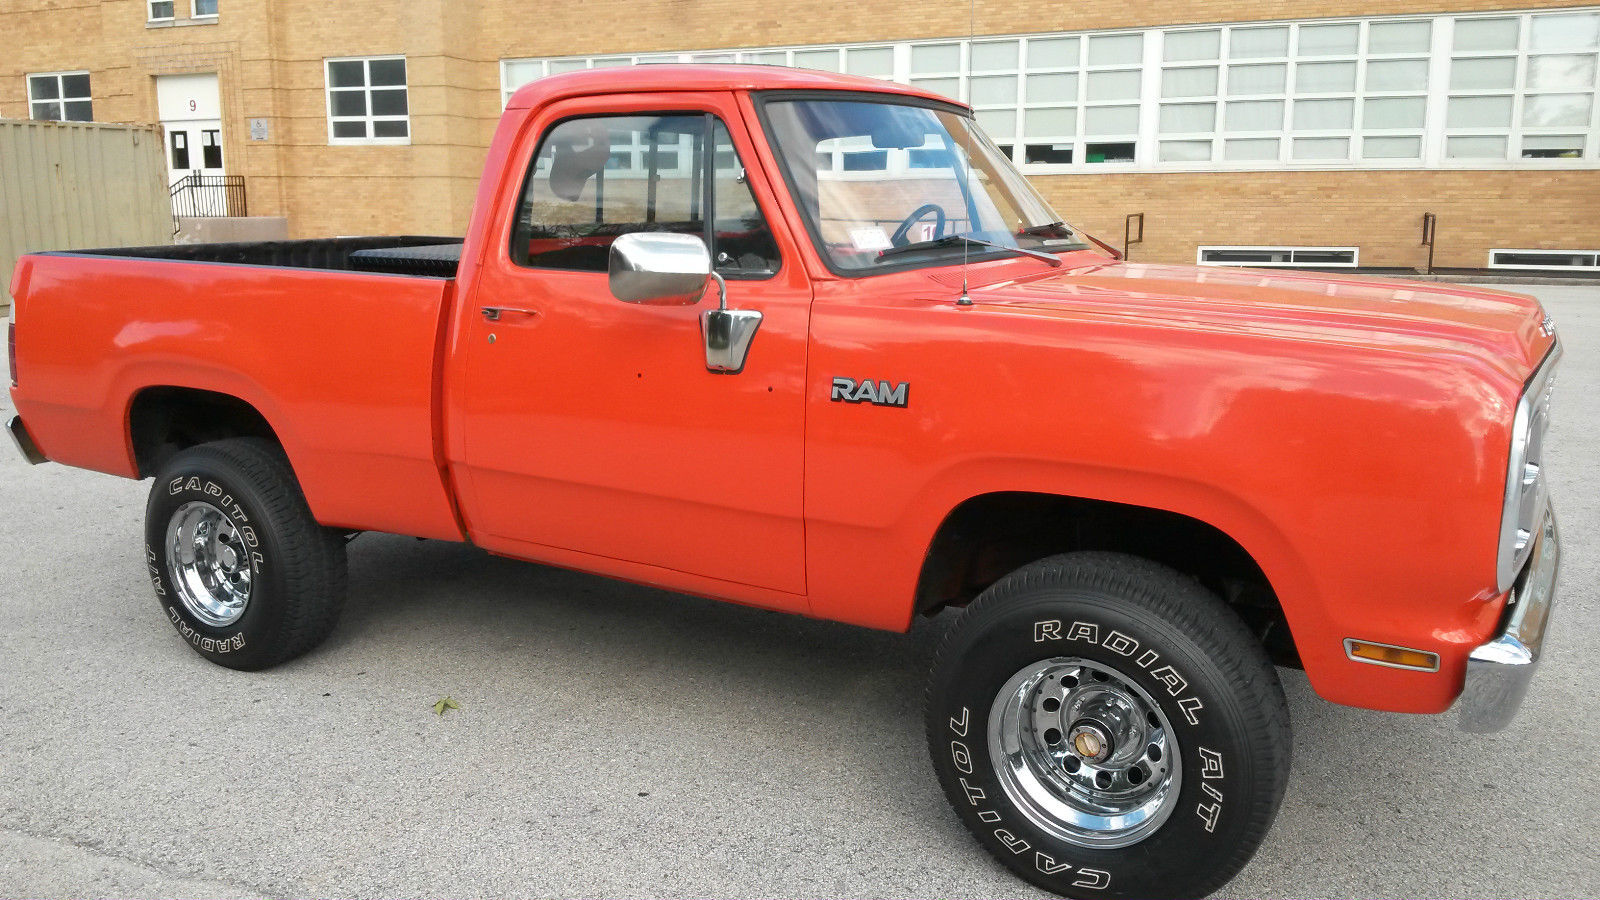 truck bed lift system with 4038 1980 Dodge W 150 4x4 Short Bed Hemi Orange on 1407 2006 Dodge Ram 2500 Mega Cab Overkill moreover Self Propelled Modular Transporters Spmt together with  besides Watch additionally Burt Reynolds 1978 Trans Bandit Auction Actors Financial Troubles.